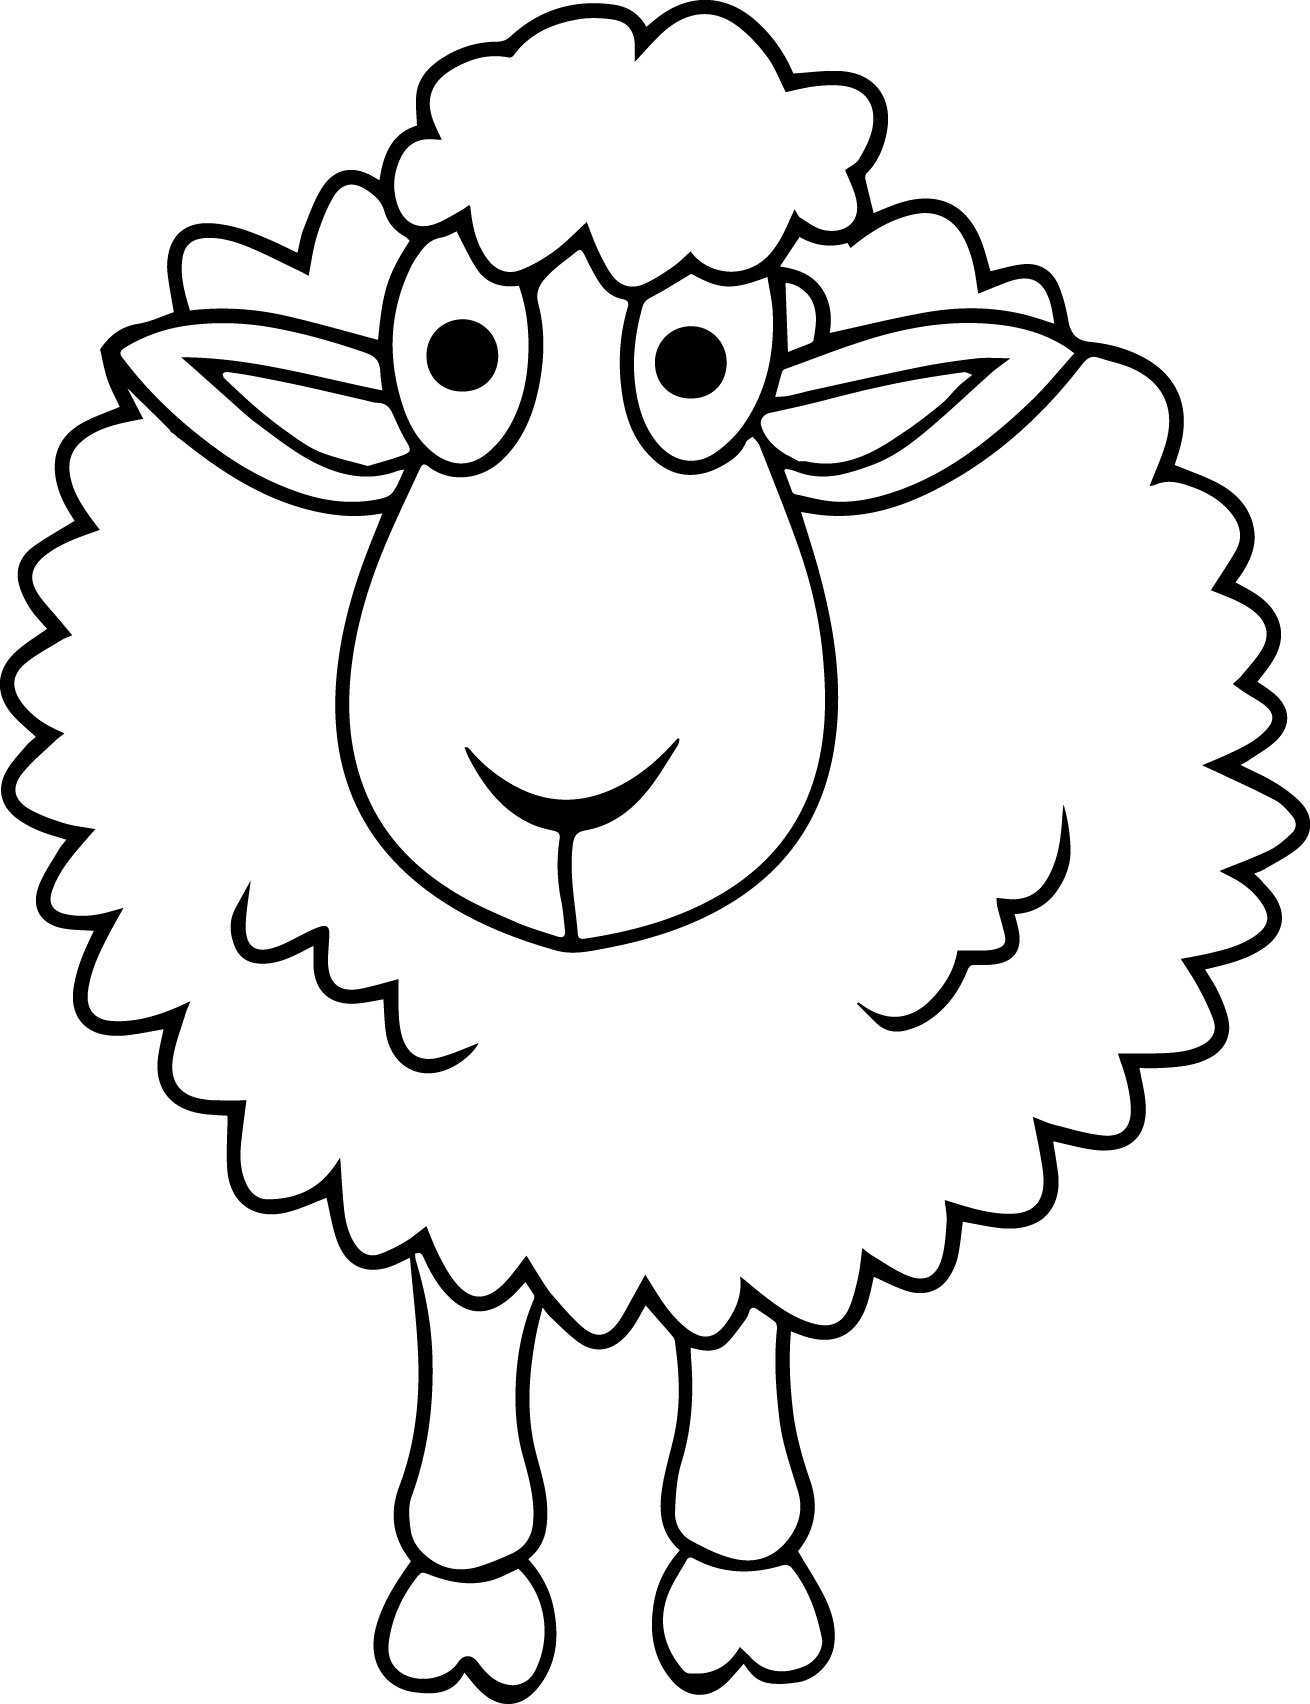 Sheep Template Printable Falep Midnightpig Co